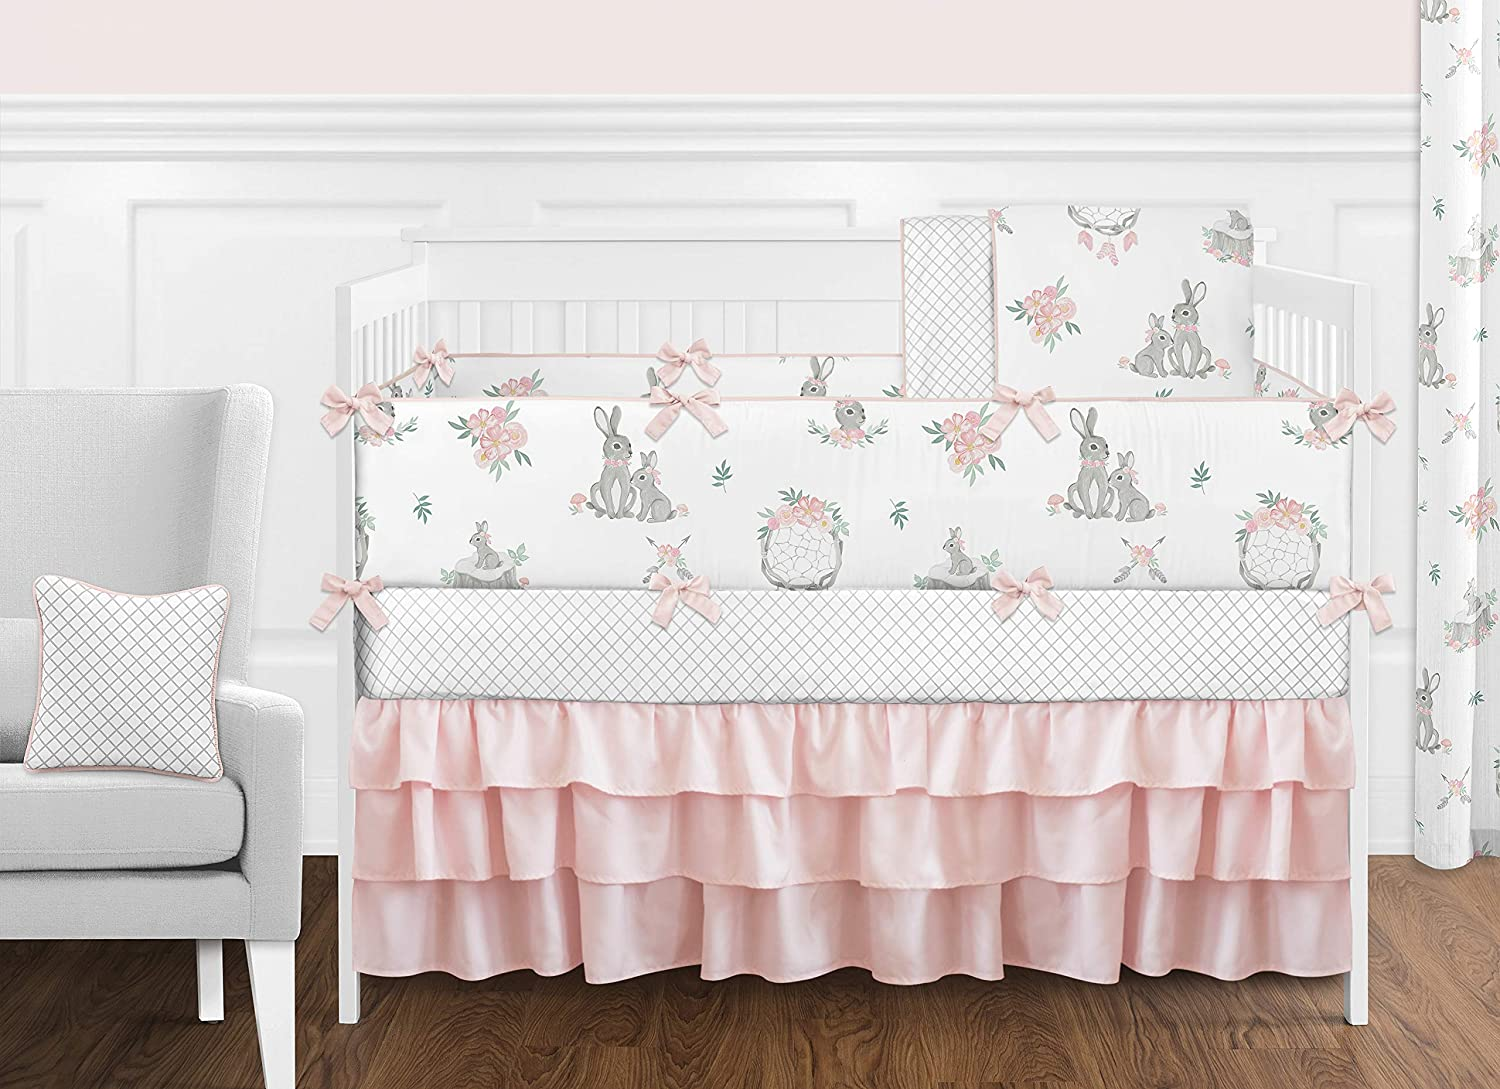 Sweet Jojo Designs Blush Pink and Grey Woodland Boho Dream Catcher Arrow Gray Bunny Floral Baby Girl Nursery Crib Bedding Set with Bumper - 9 Pieces - Watercolor Rose Flower